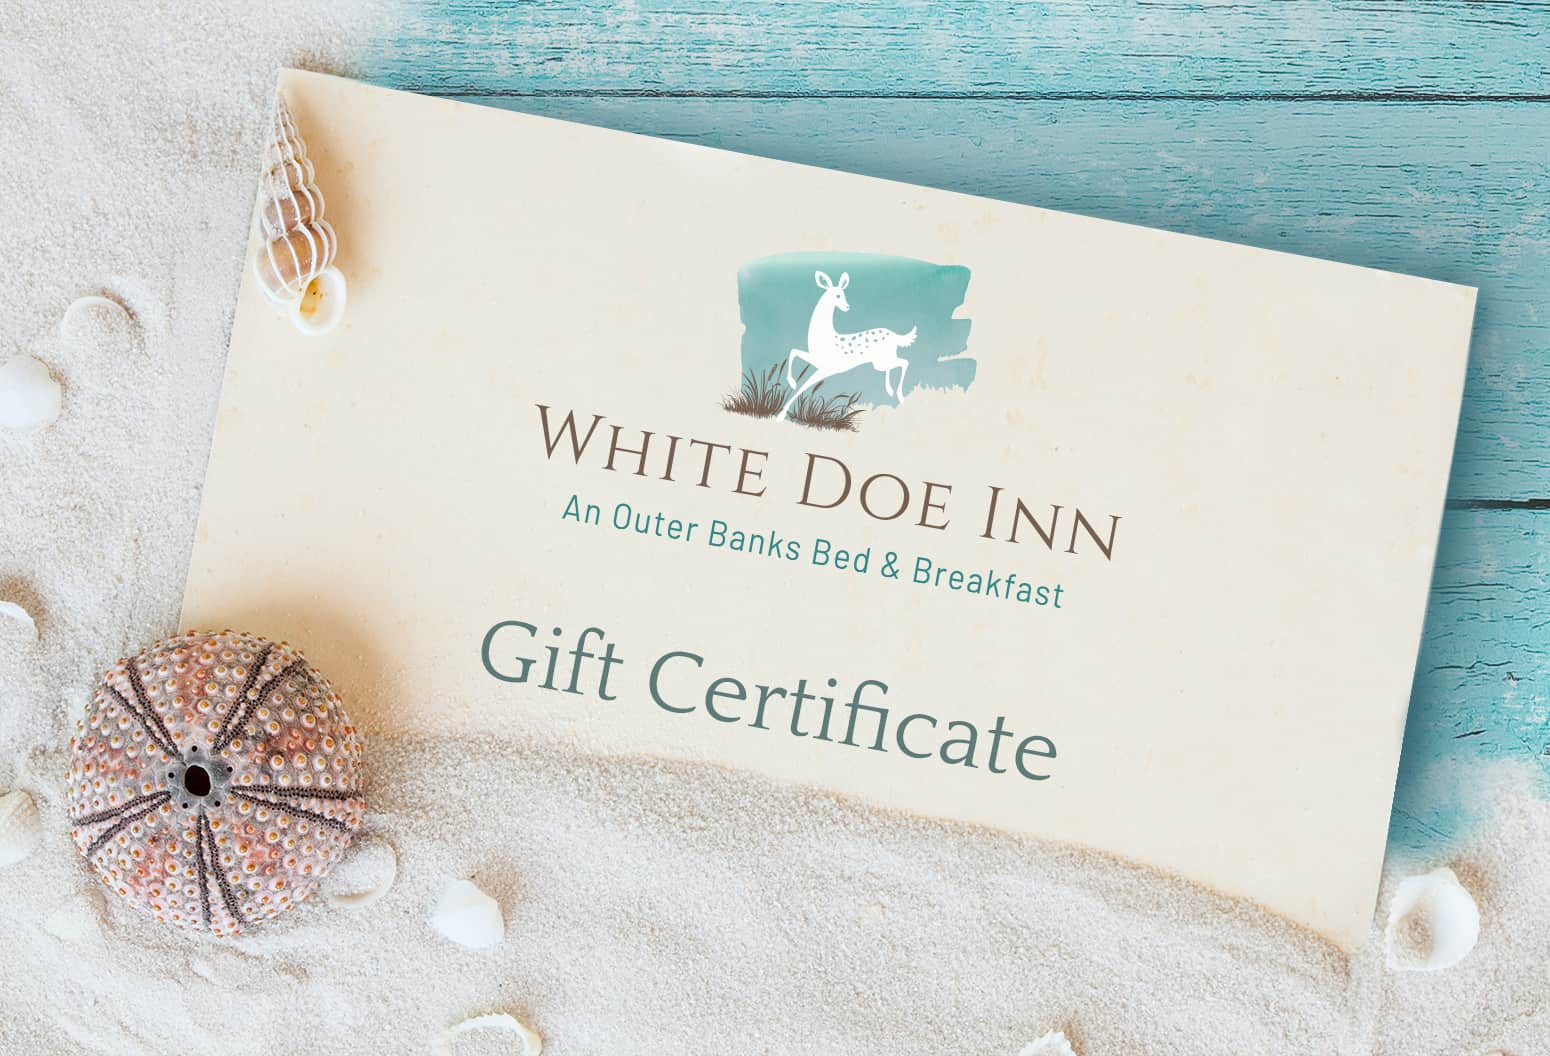 NC Travel Gift Certificate to Our Outer Banks Inn